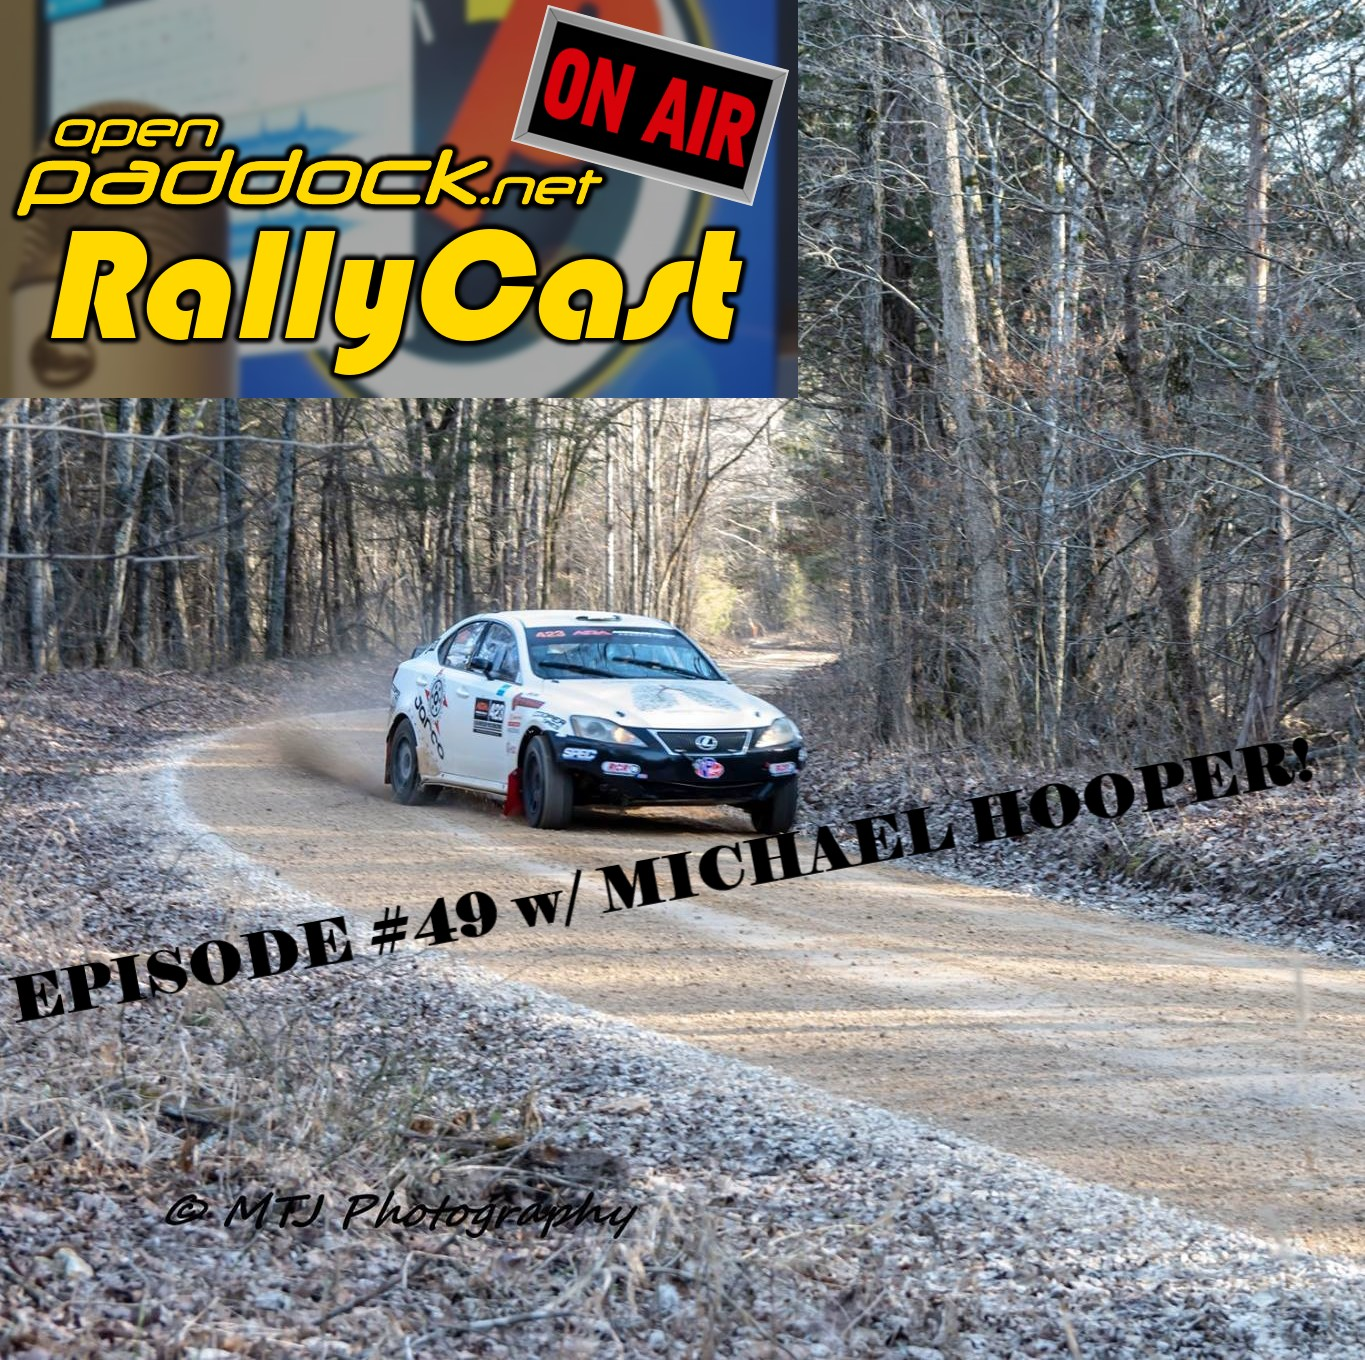 RallyCast Episode 49 with Michael Hooper of River City Rally